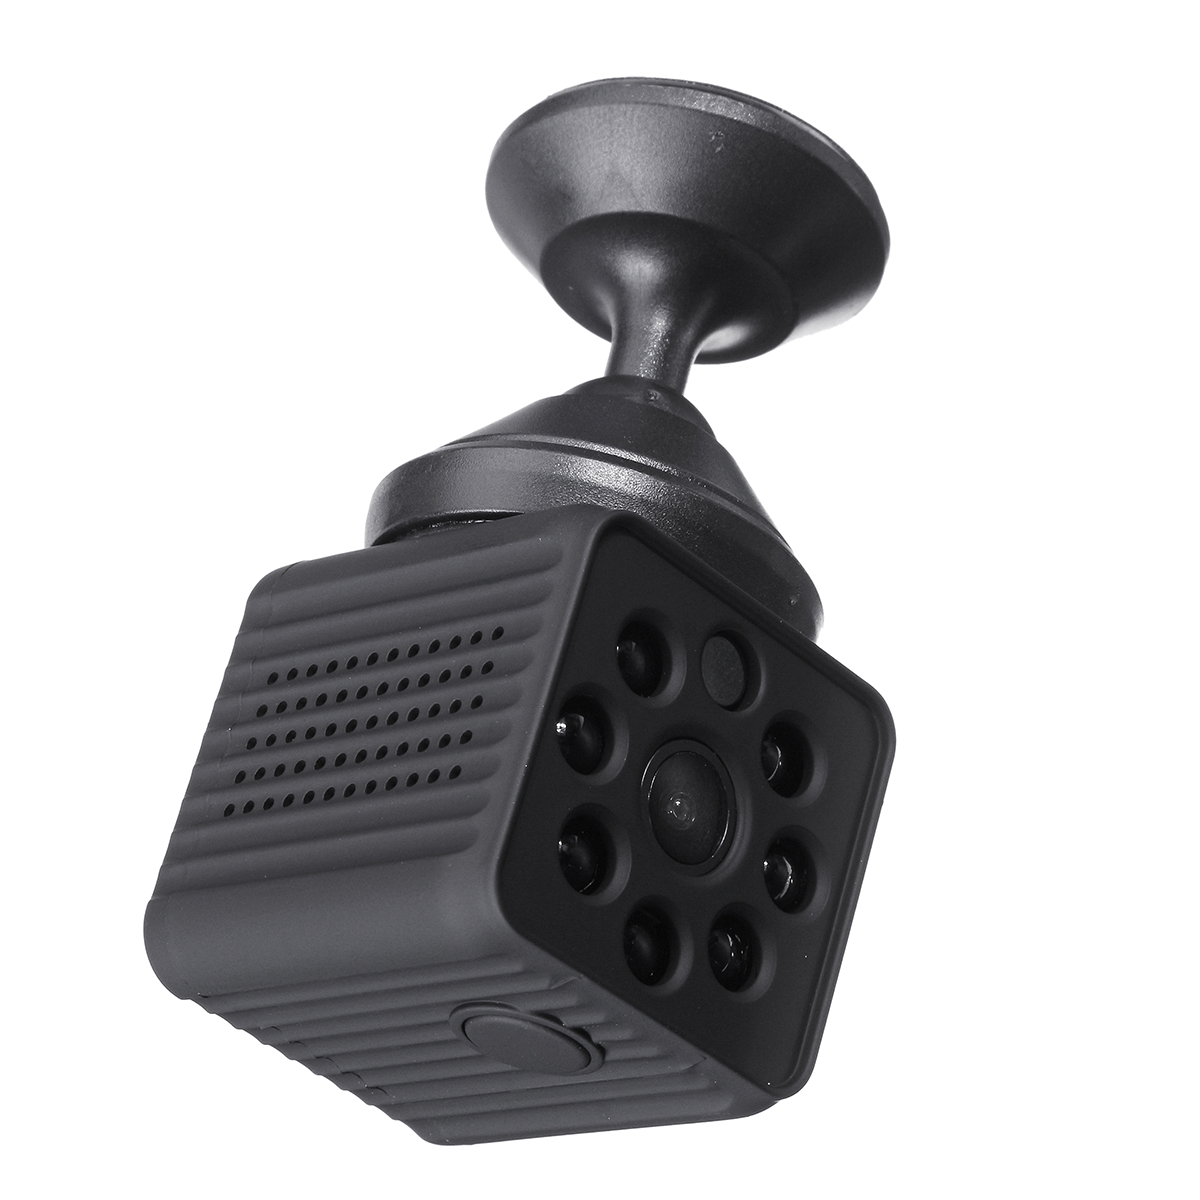 HD 1080P Wireless Camera Motion Detection Night Vision CCTV Home Security Wifi Cam Bracket 2 Type IP Camera